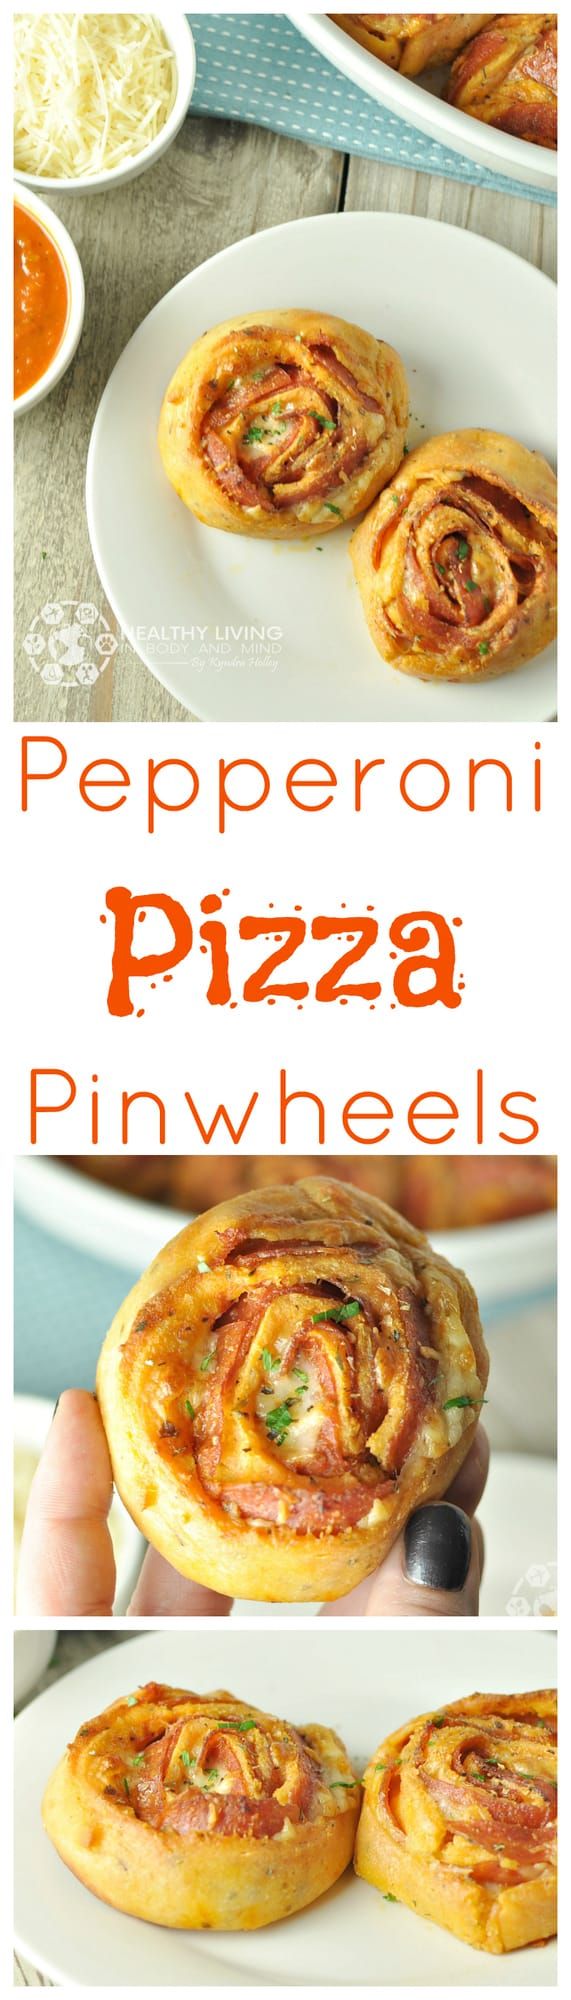 Pepperoni Pizza Pinwheels - Low Carb, Gluten Free   Peace Love and Low Carb